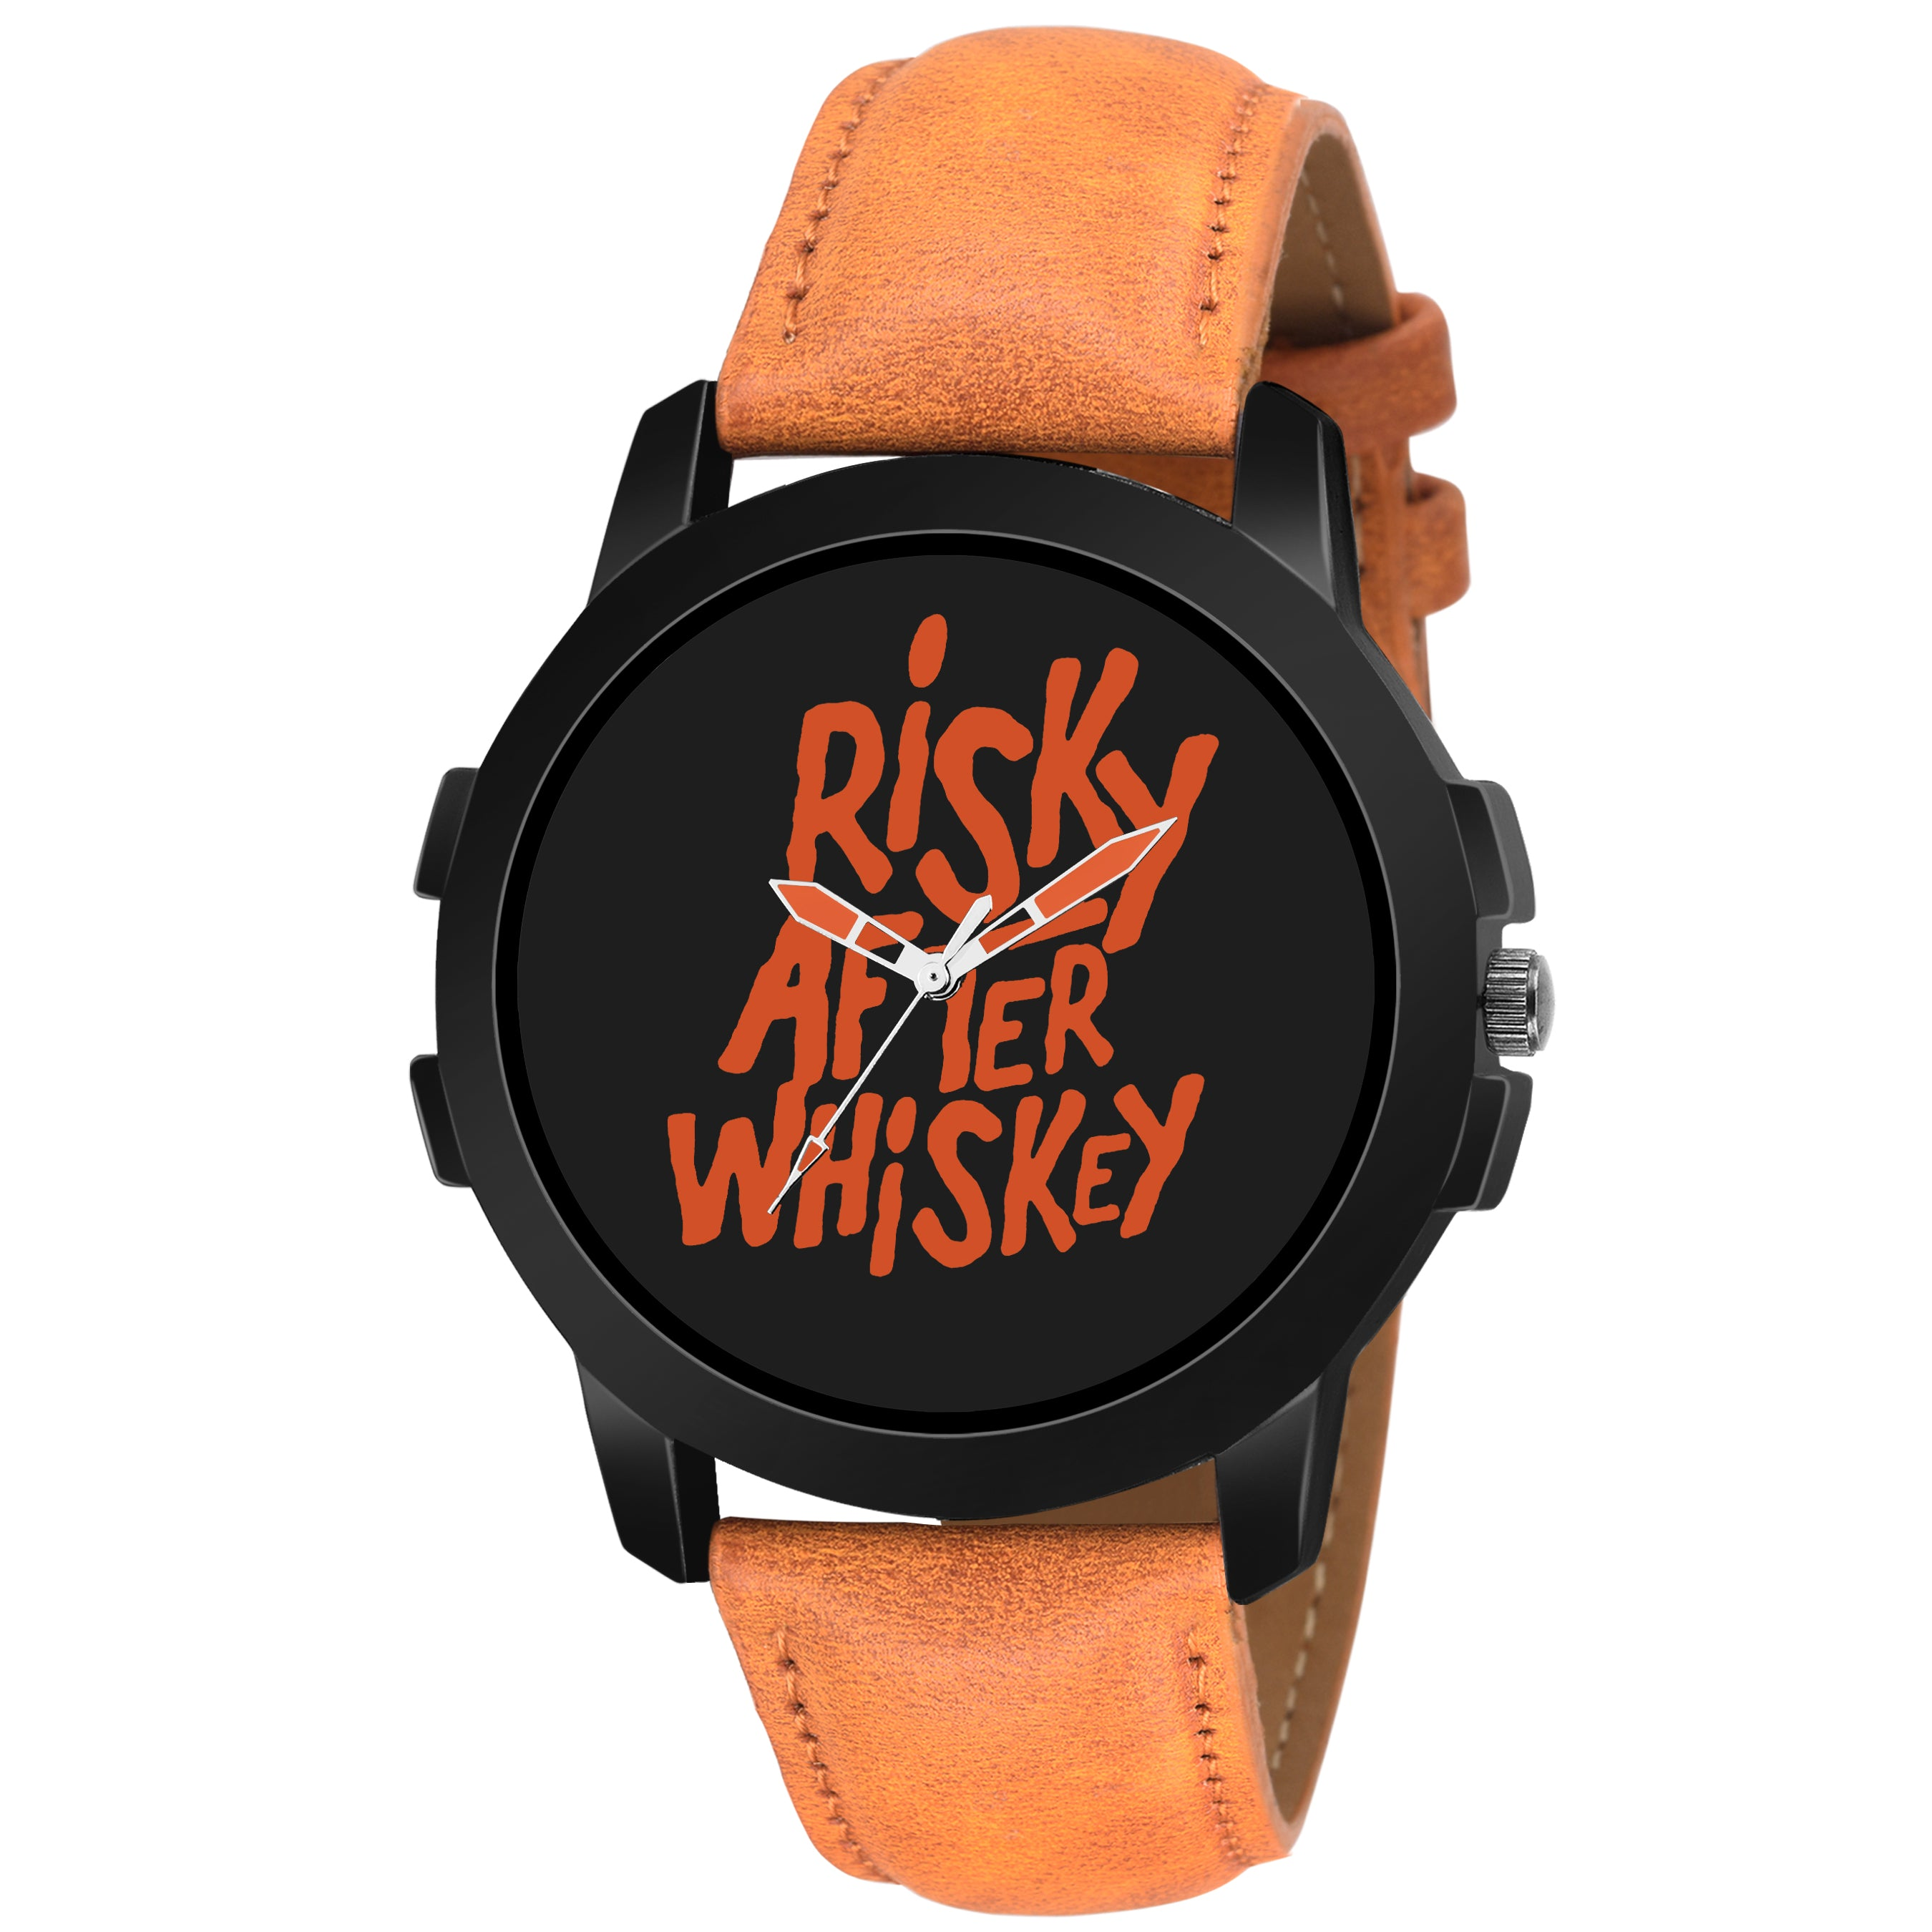 Lorenz MK-2019W Black Dial 'Risky After WISKY' Watch for Men